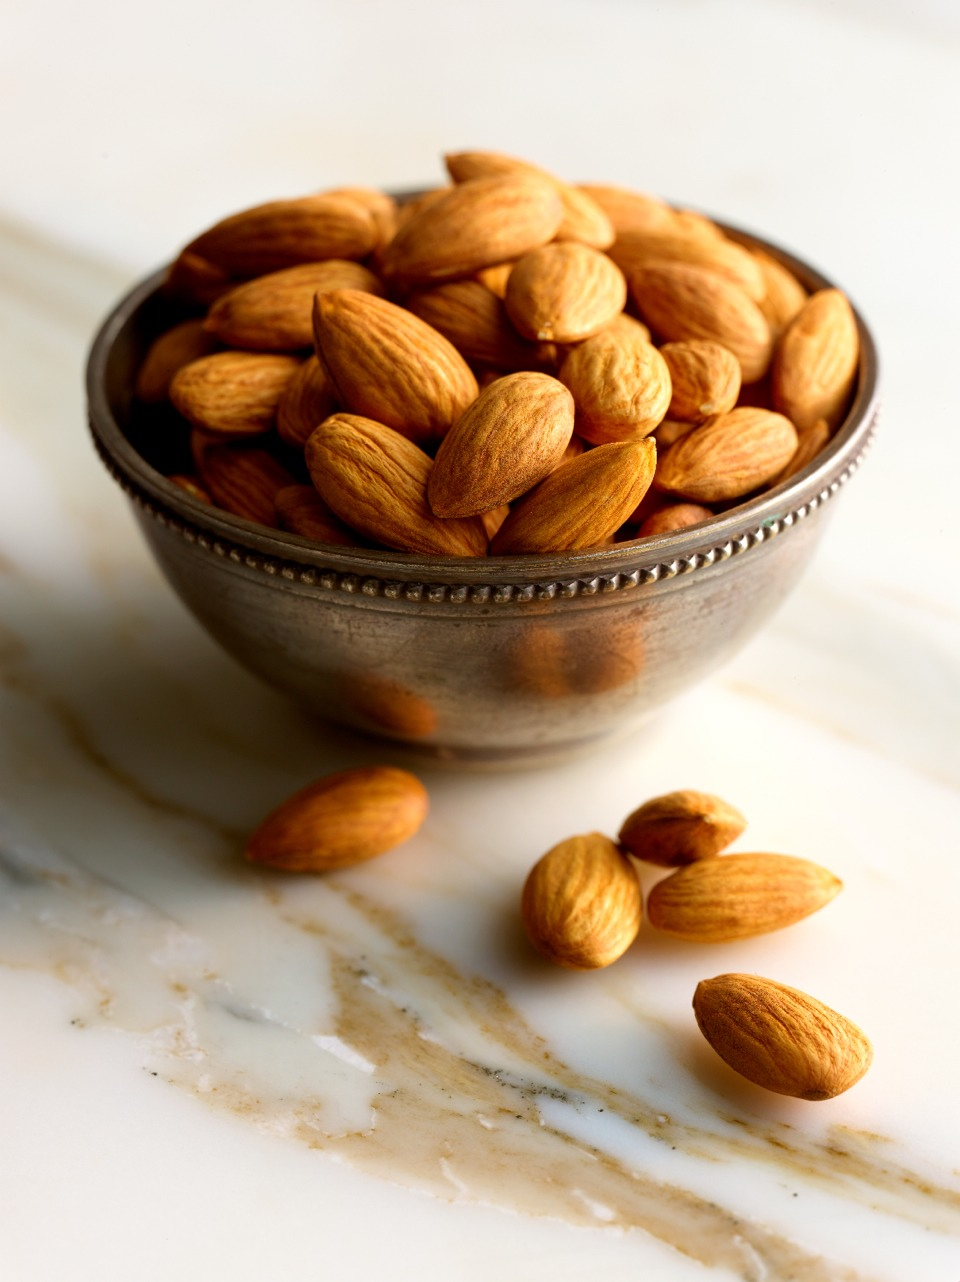 Almonds:Topping my list of feisty foods, almonds have long been purported to increase passion, act as a sexual stimulant, and aid with fertility. Almonds are nutrient-dense and rich in several trace minerals that are important for for sexual health and reproduction